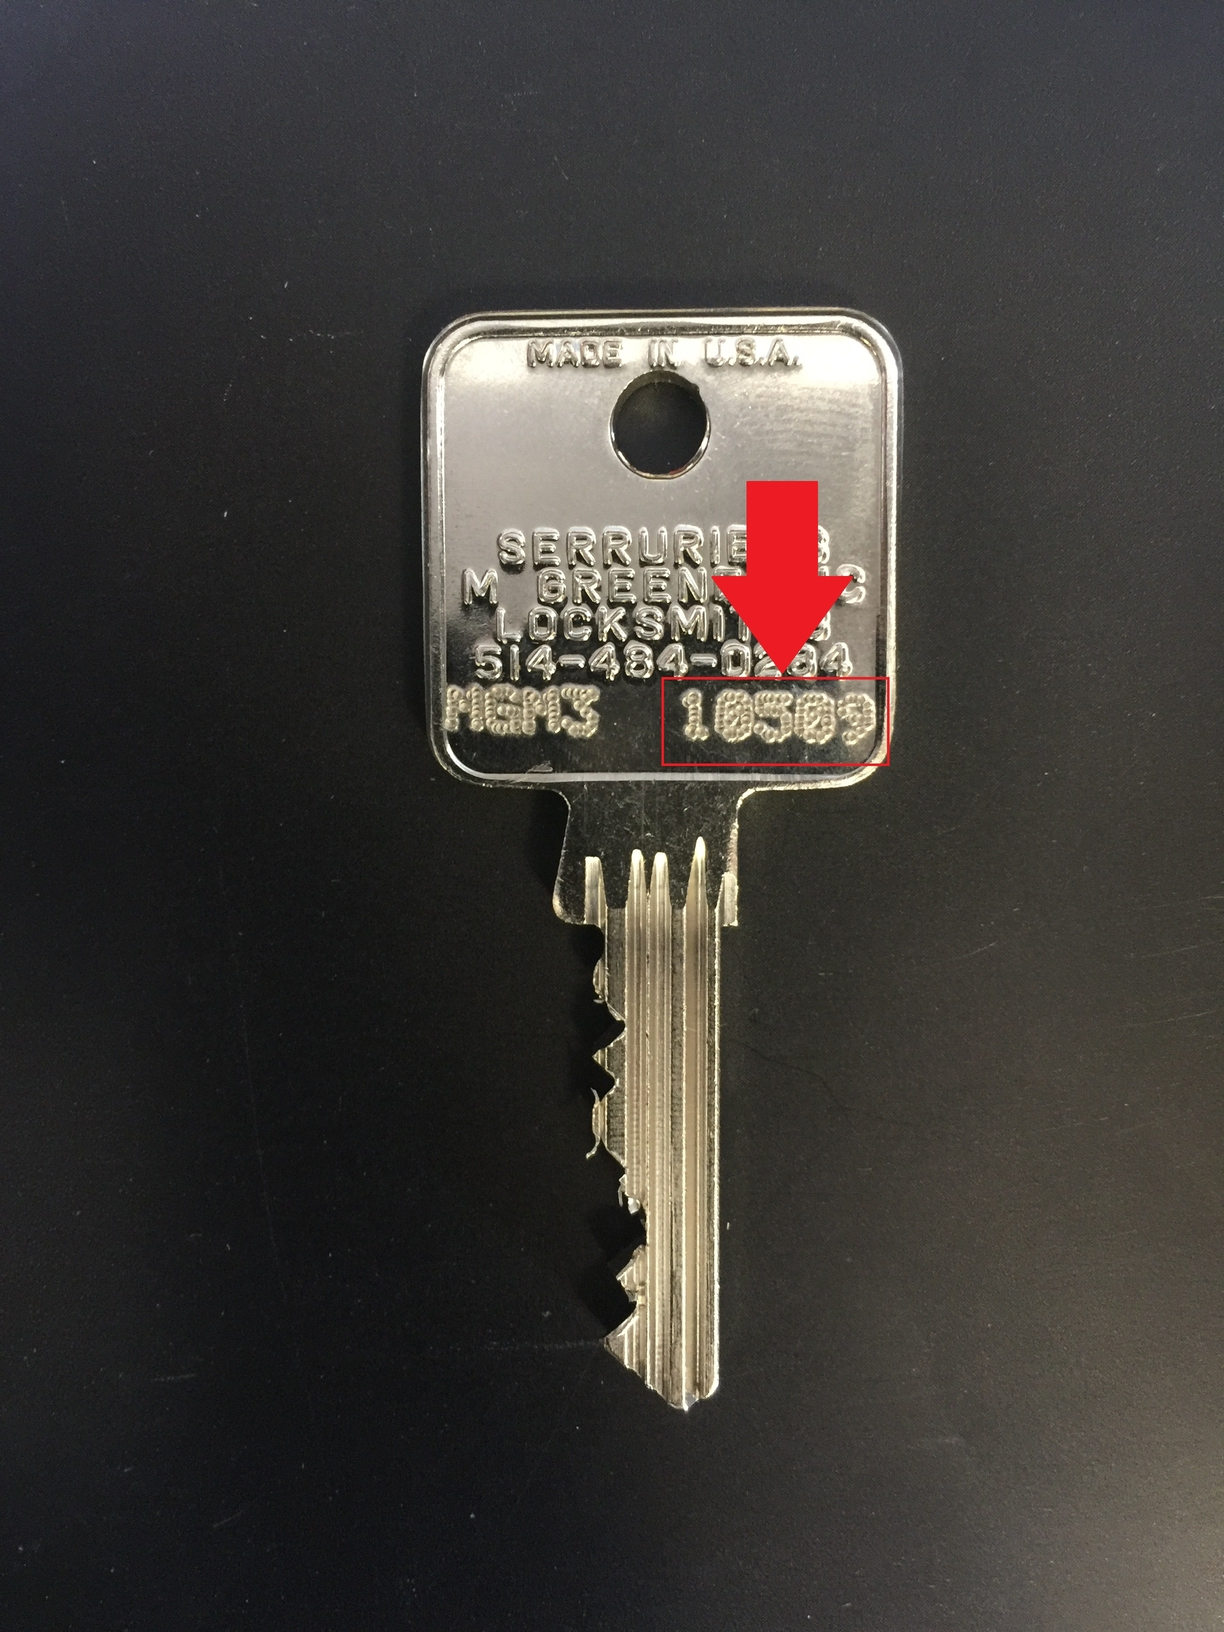 Find ID stamped on the Back of Your Key